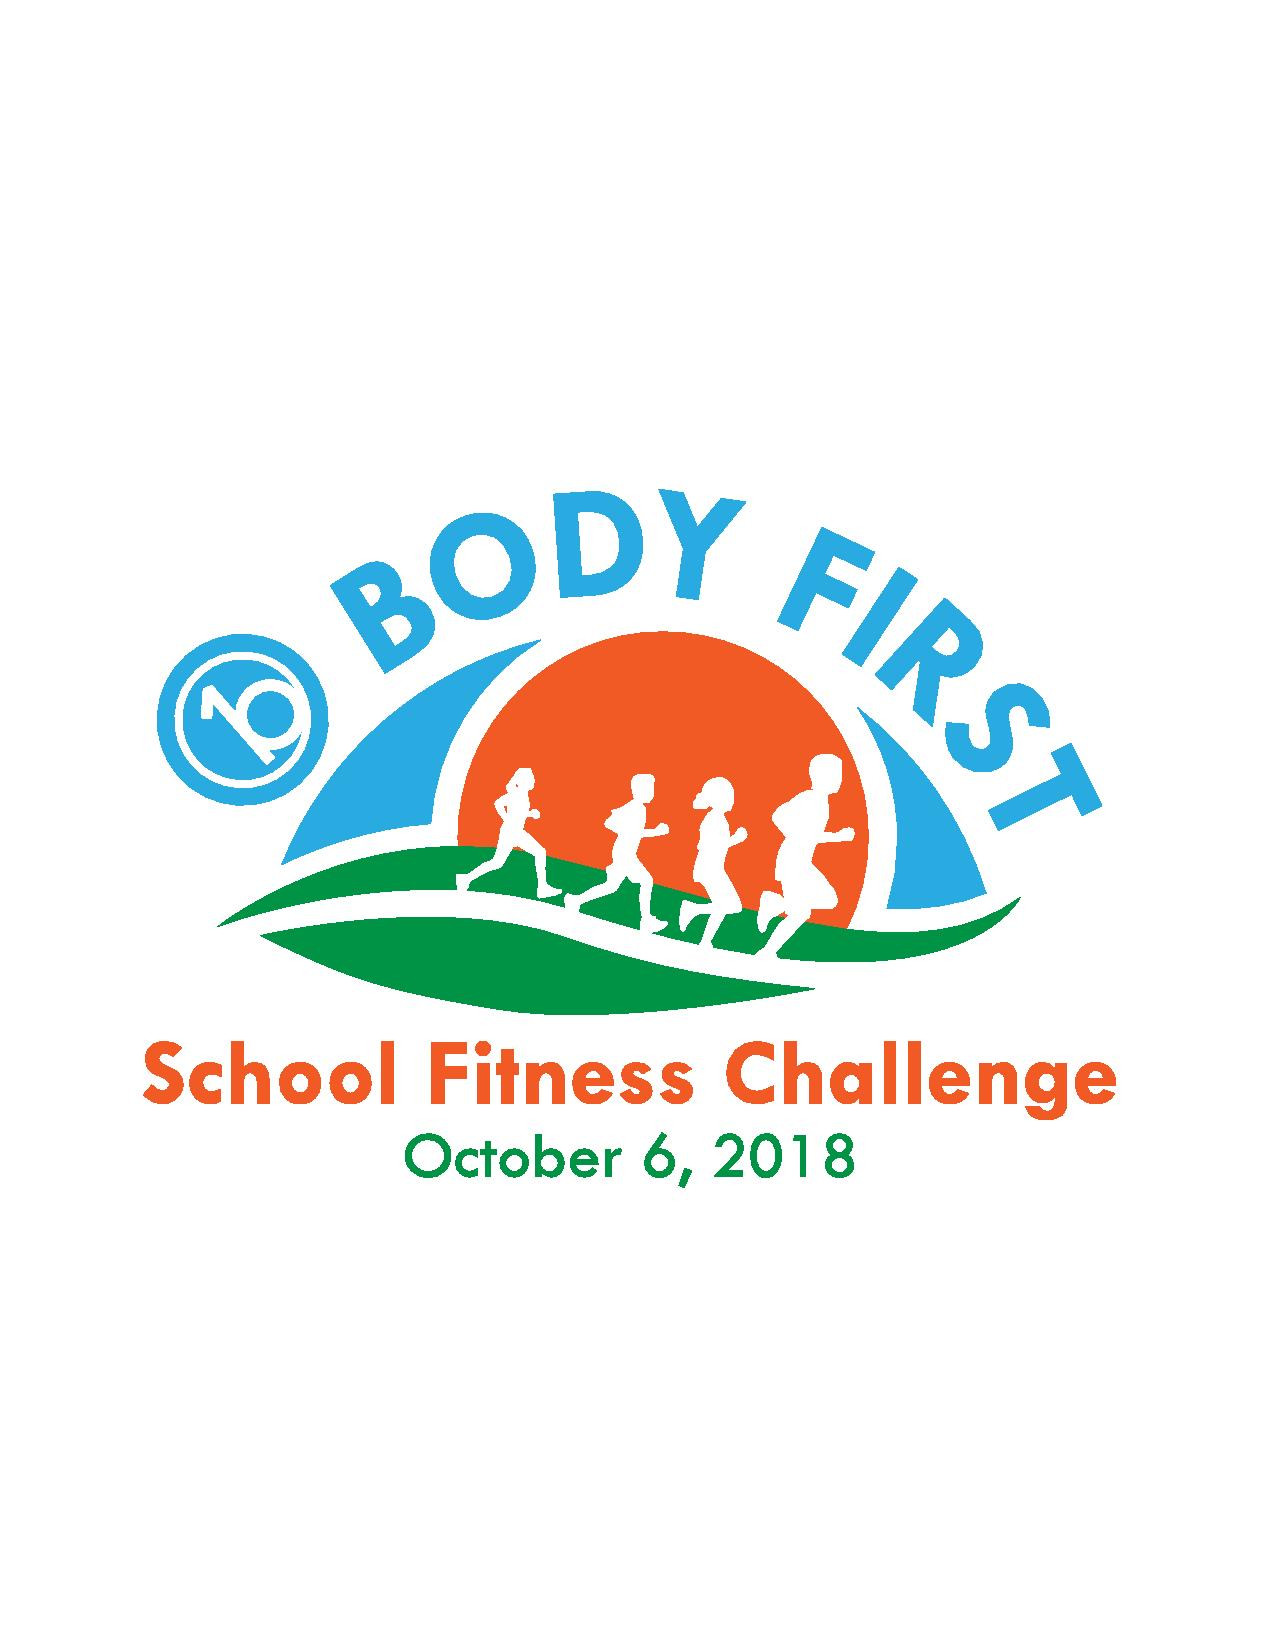 The 2018 Body First School Fitness Challenge was cancelled due to heavy rains in the Manhattan area on October 6. However, more than $10,000 has been ...